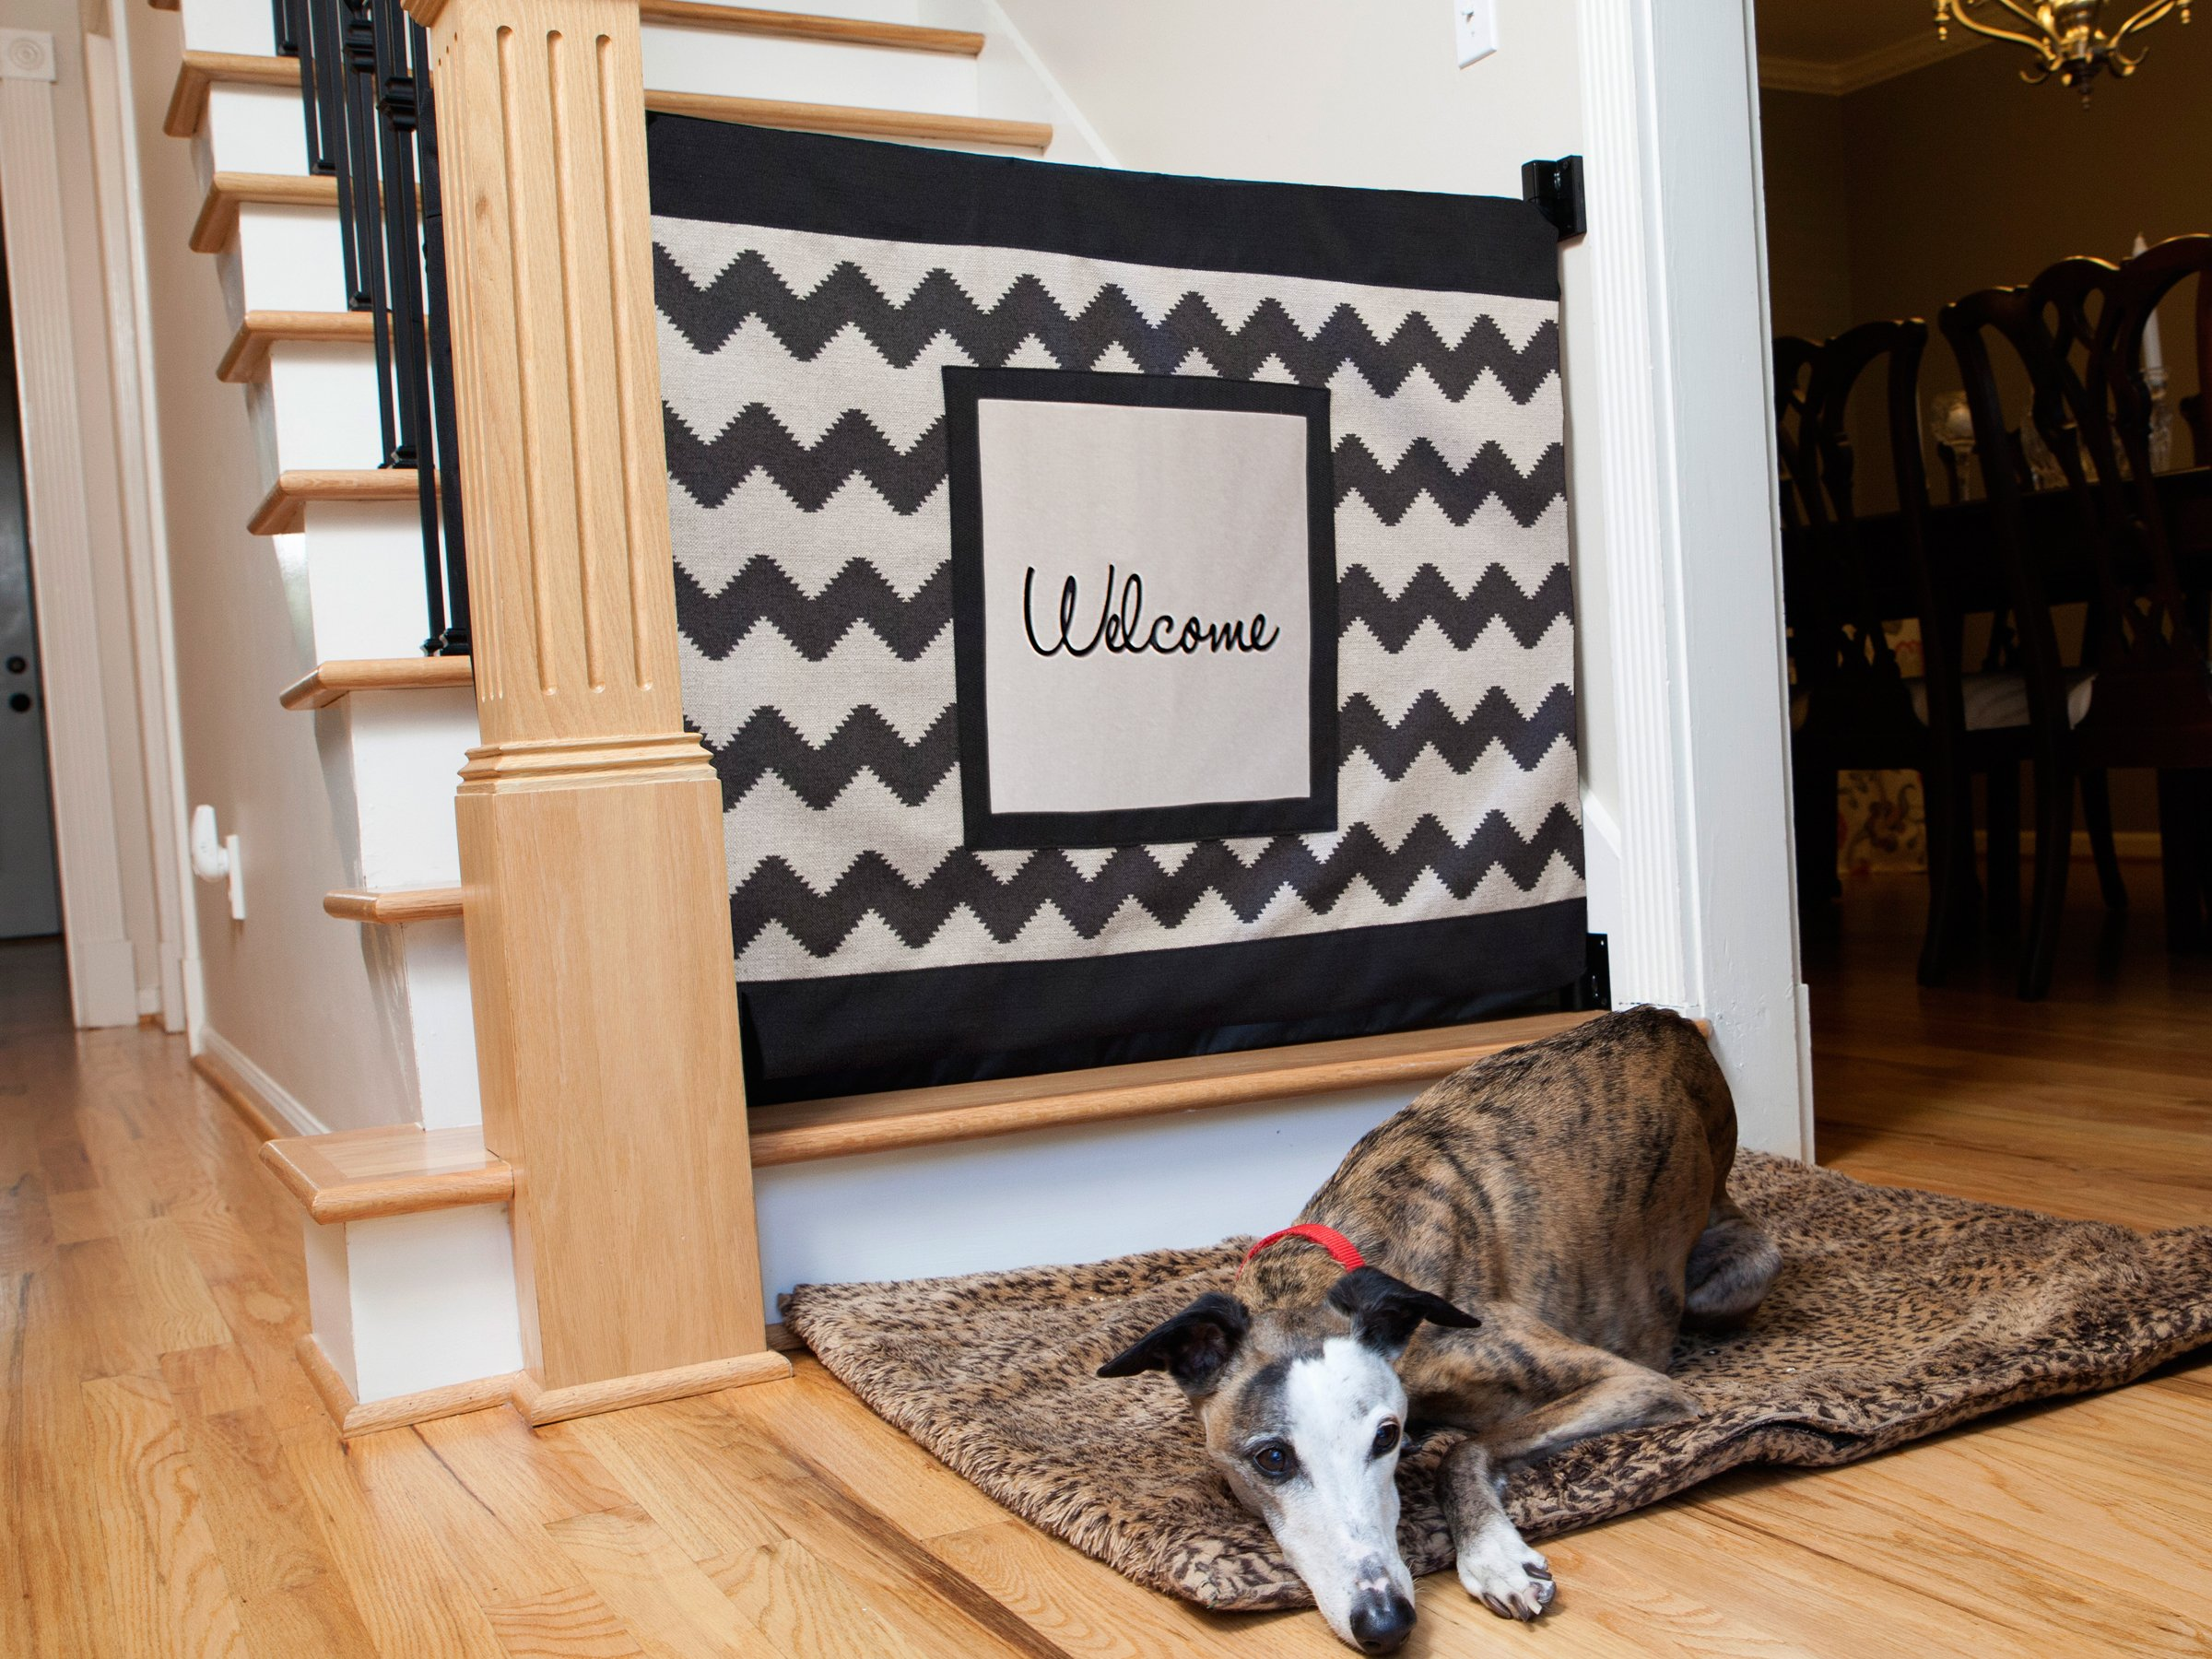 The Stair Barrier Wall To Banister Chevron With Welcome Patch Pet And Baby  Safety Gate For